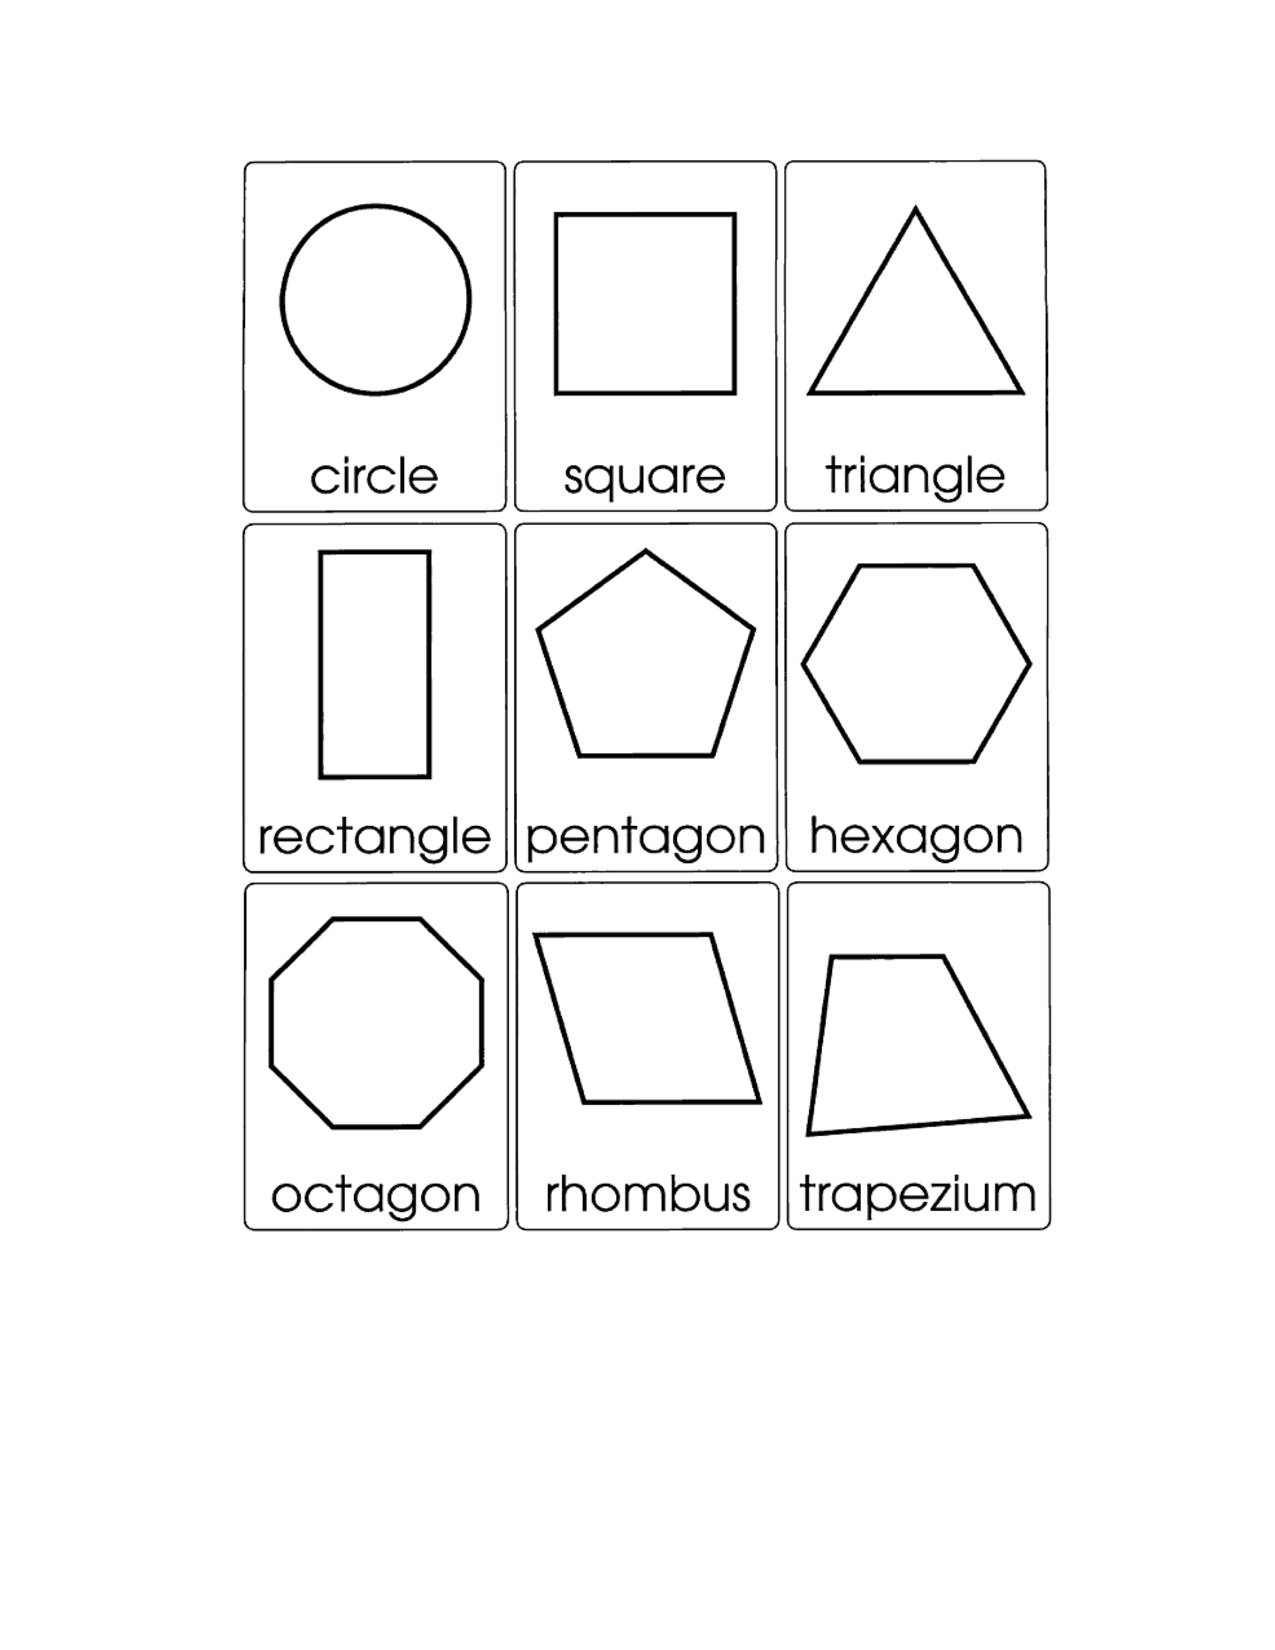 2d shape cards google search math pinterest shaped cards and math. Black Bedroom Furniture Sets. Home Design Ideas